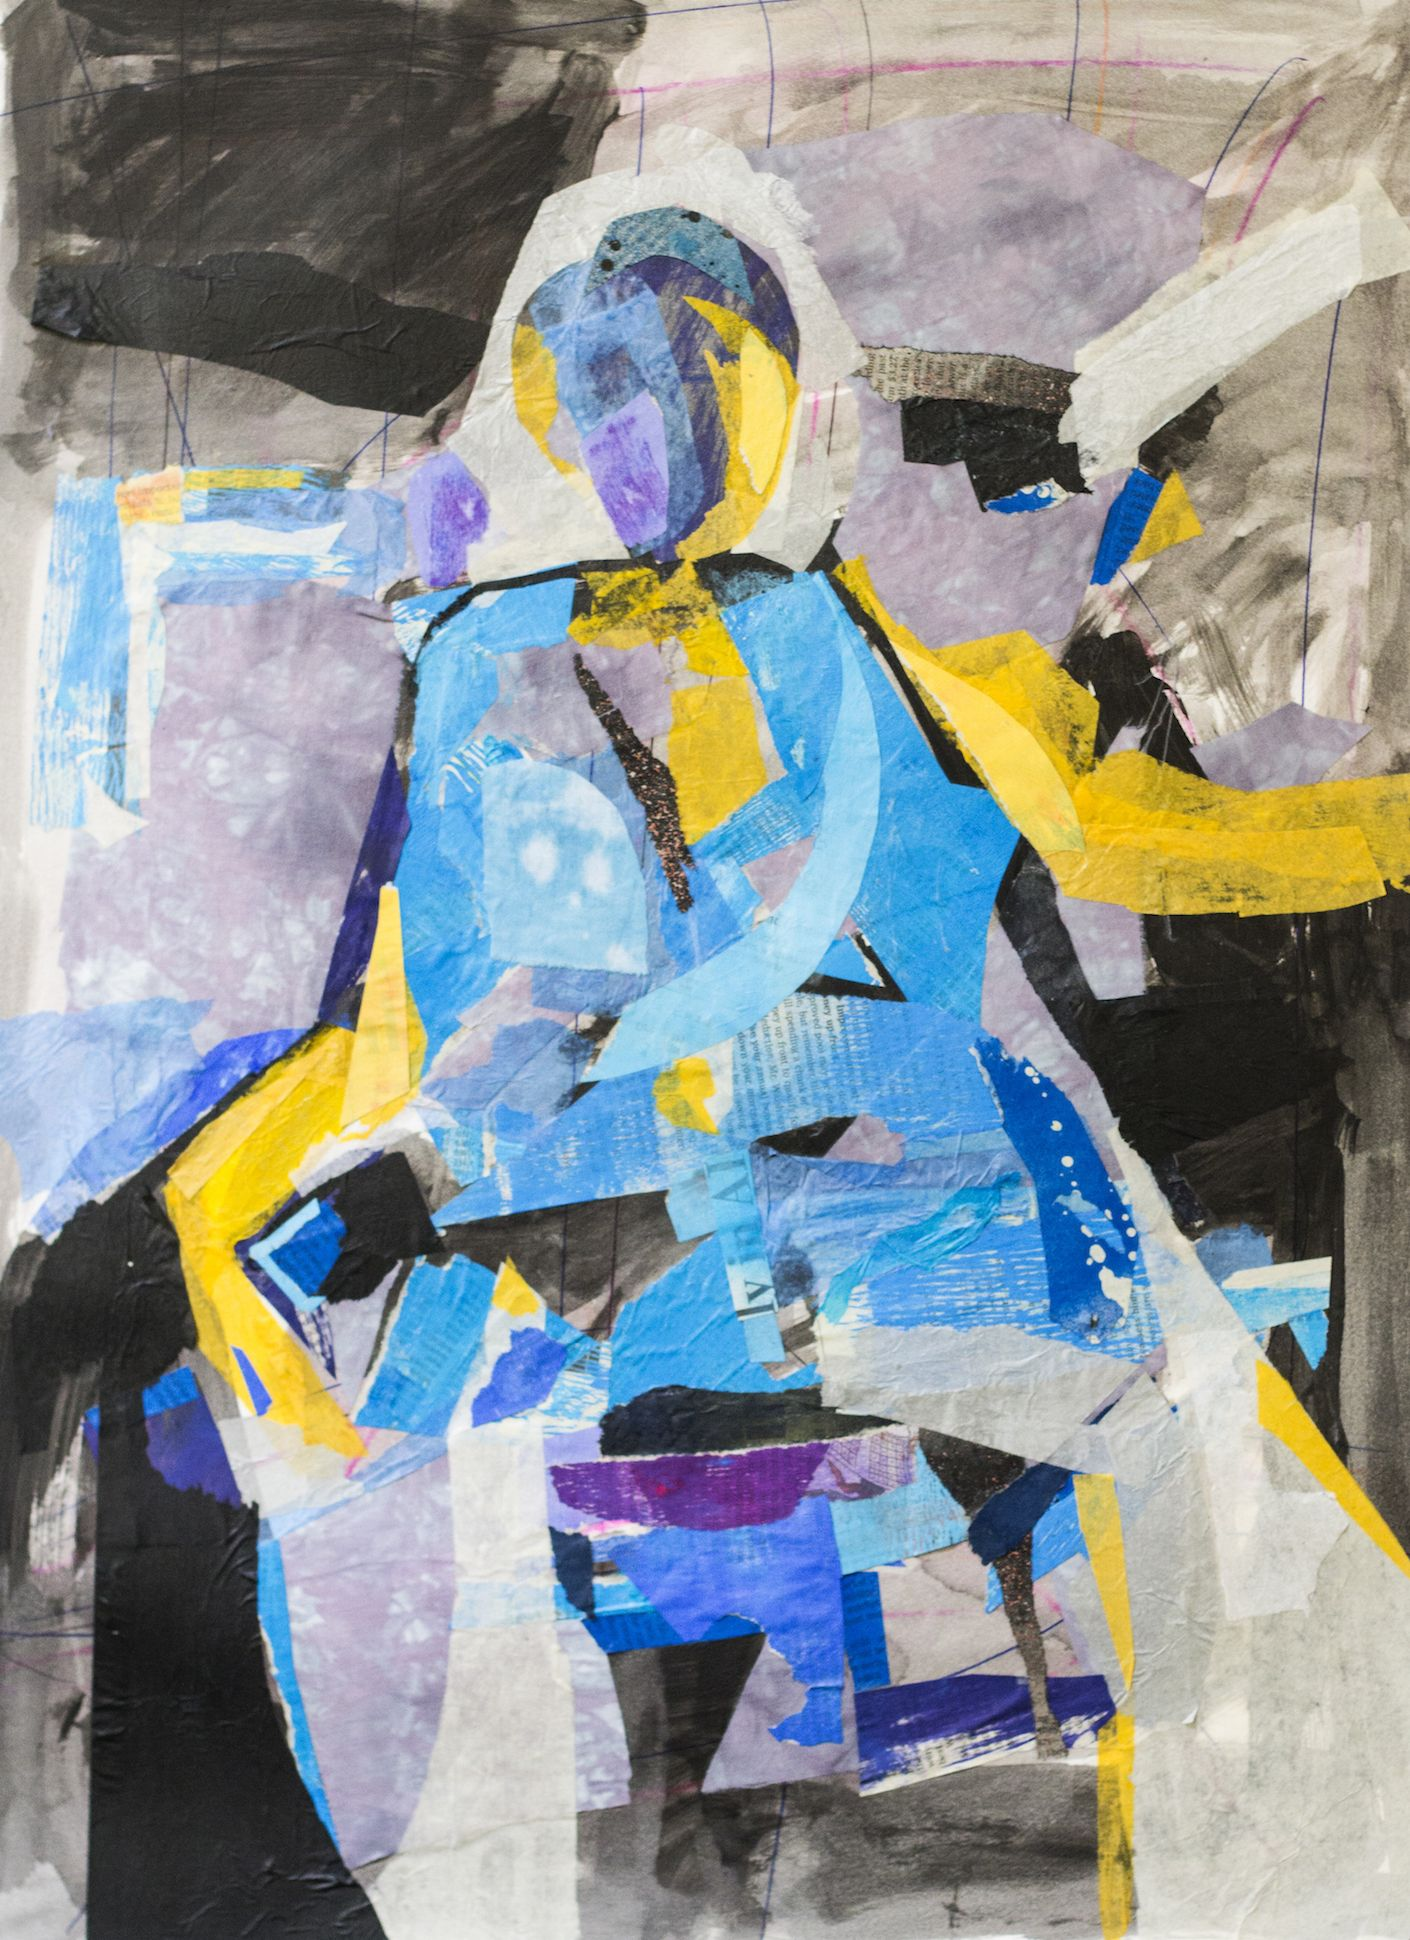 Tangled Up in Blue by GJ Gillespie. Collage. 20 x 18. 2015